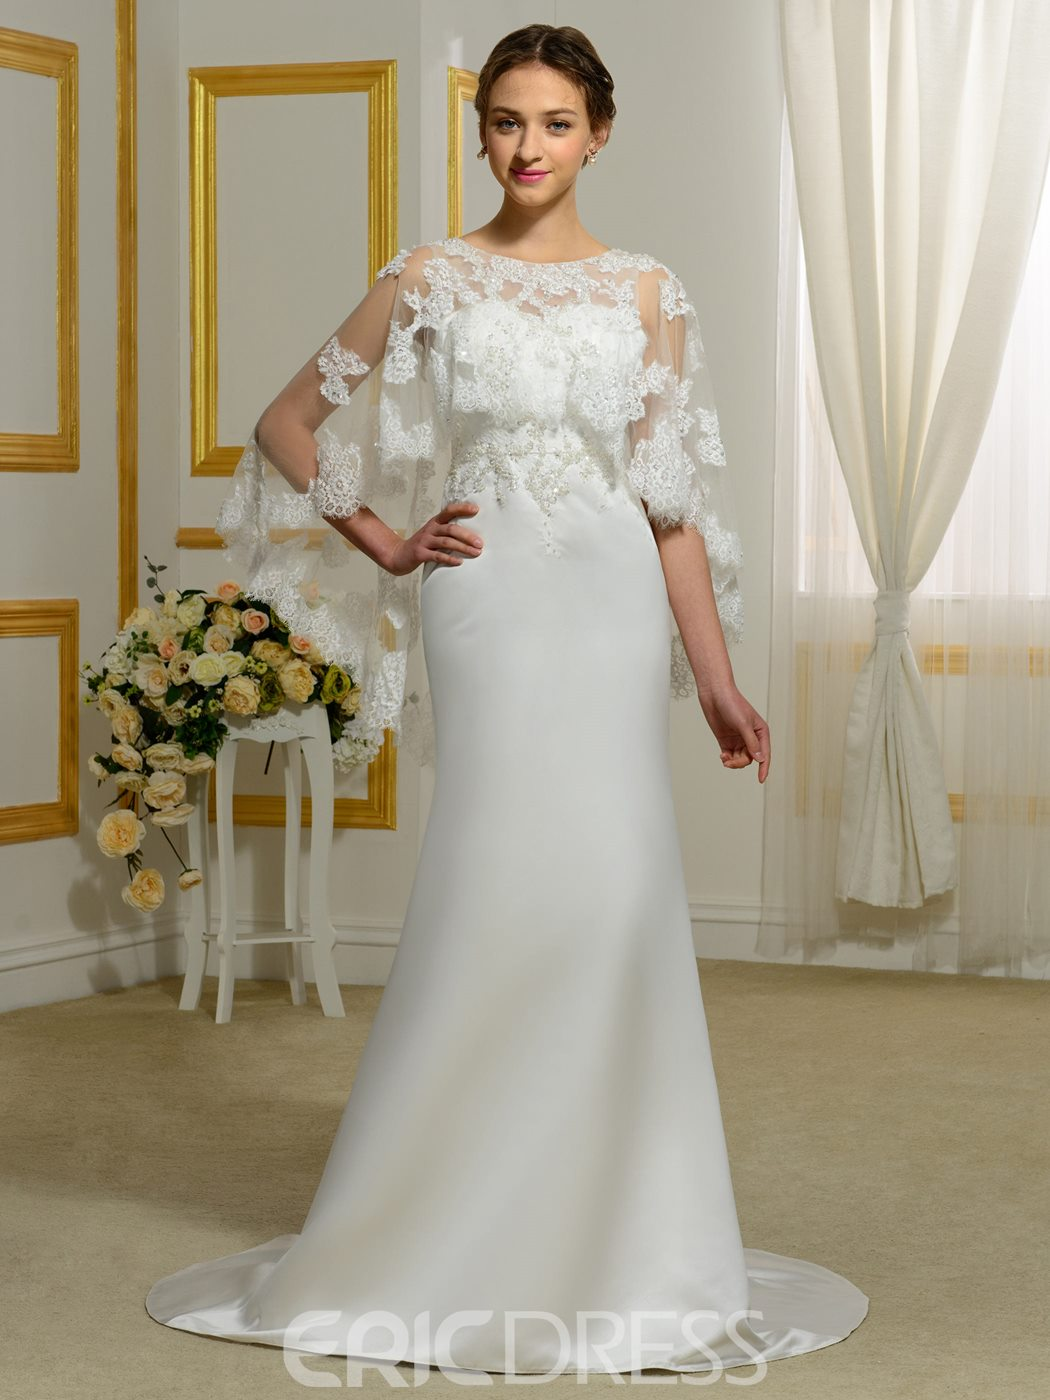 Ericdress Exquisite Backless Sheath Wedding Dress With Cape